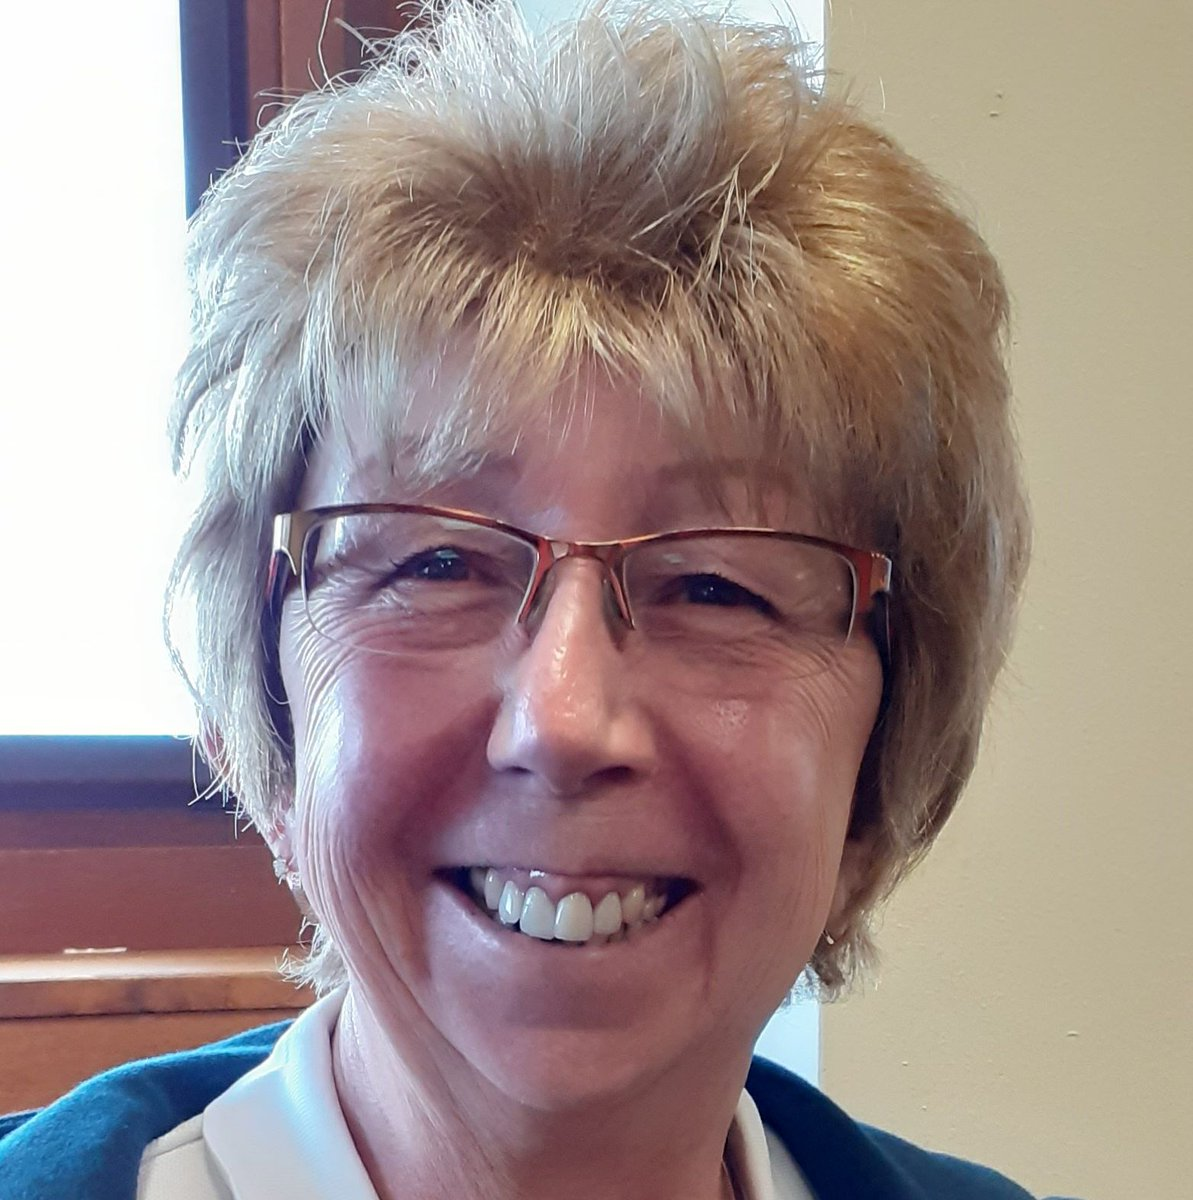 In our latest #InsideNorthumbria blog, Kay Yeo, one of our health improvement practitioners, talks about her role with helping people to age well across #Northumberland💙 Find out more here▶️ bit.ly/2MFVuJo @N_landCouncil @AgeUKNorthumber